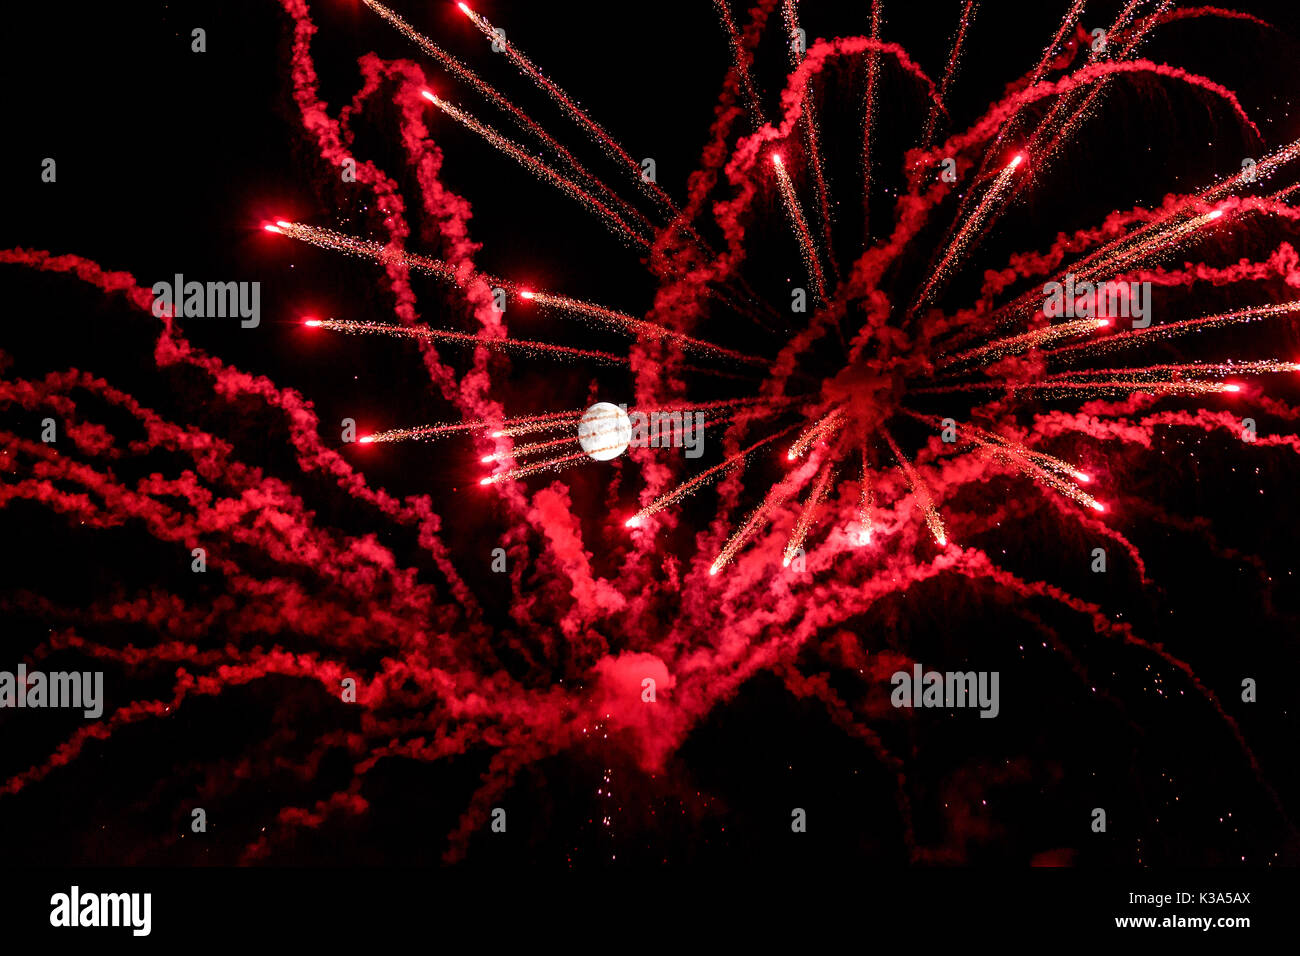 full moon night with artificial fireworks - Stock Image